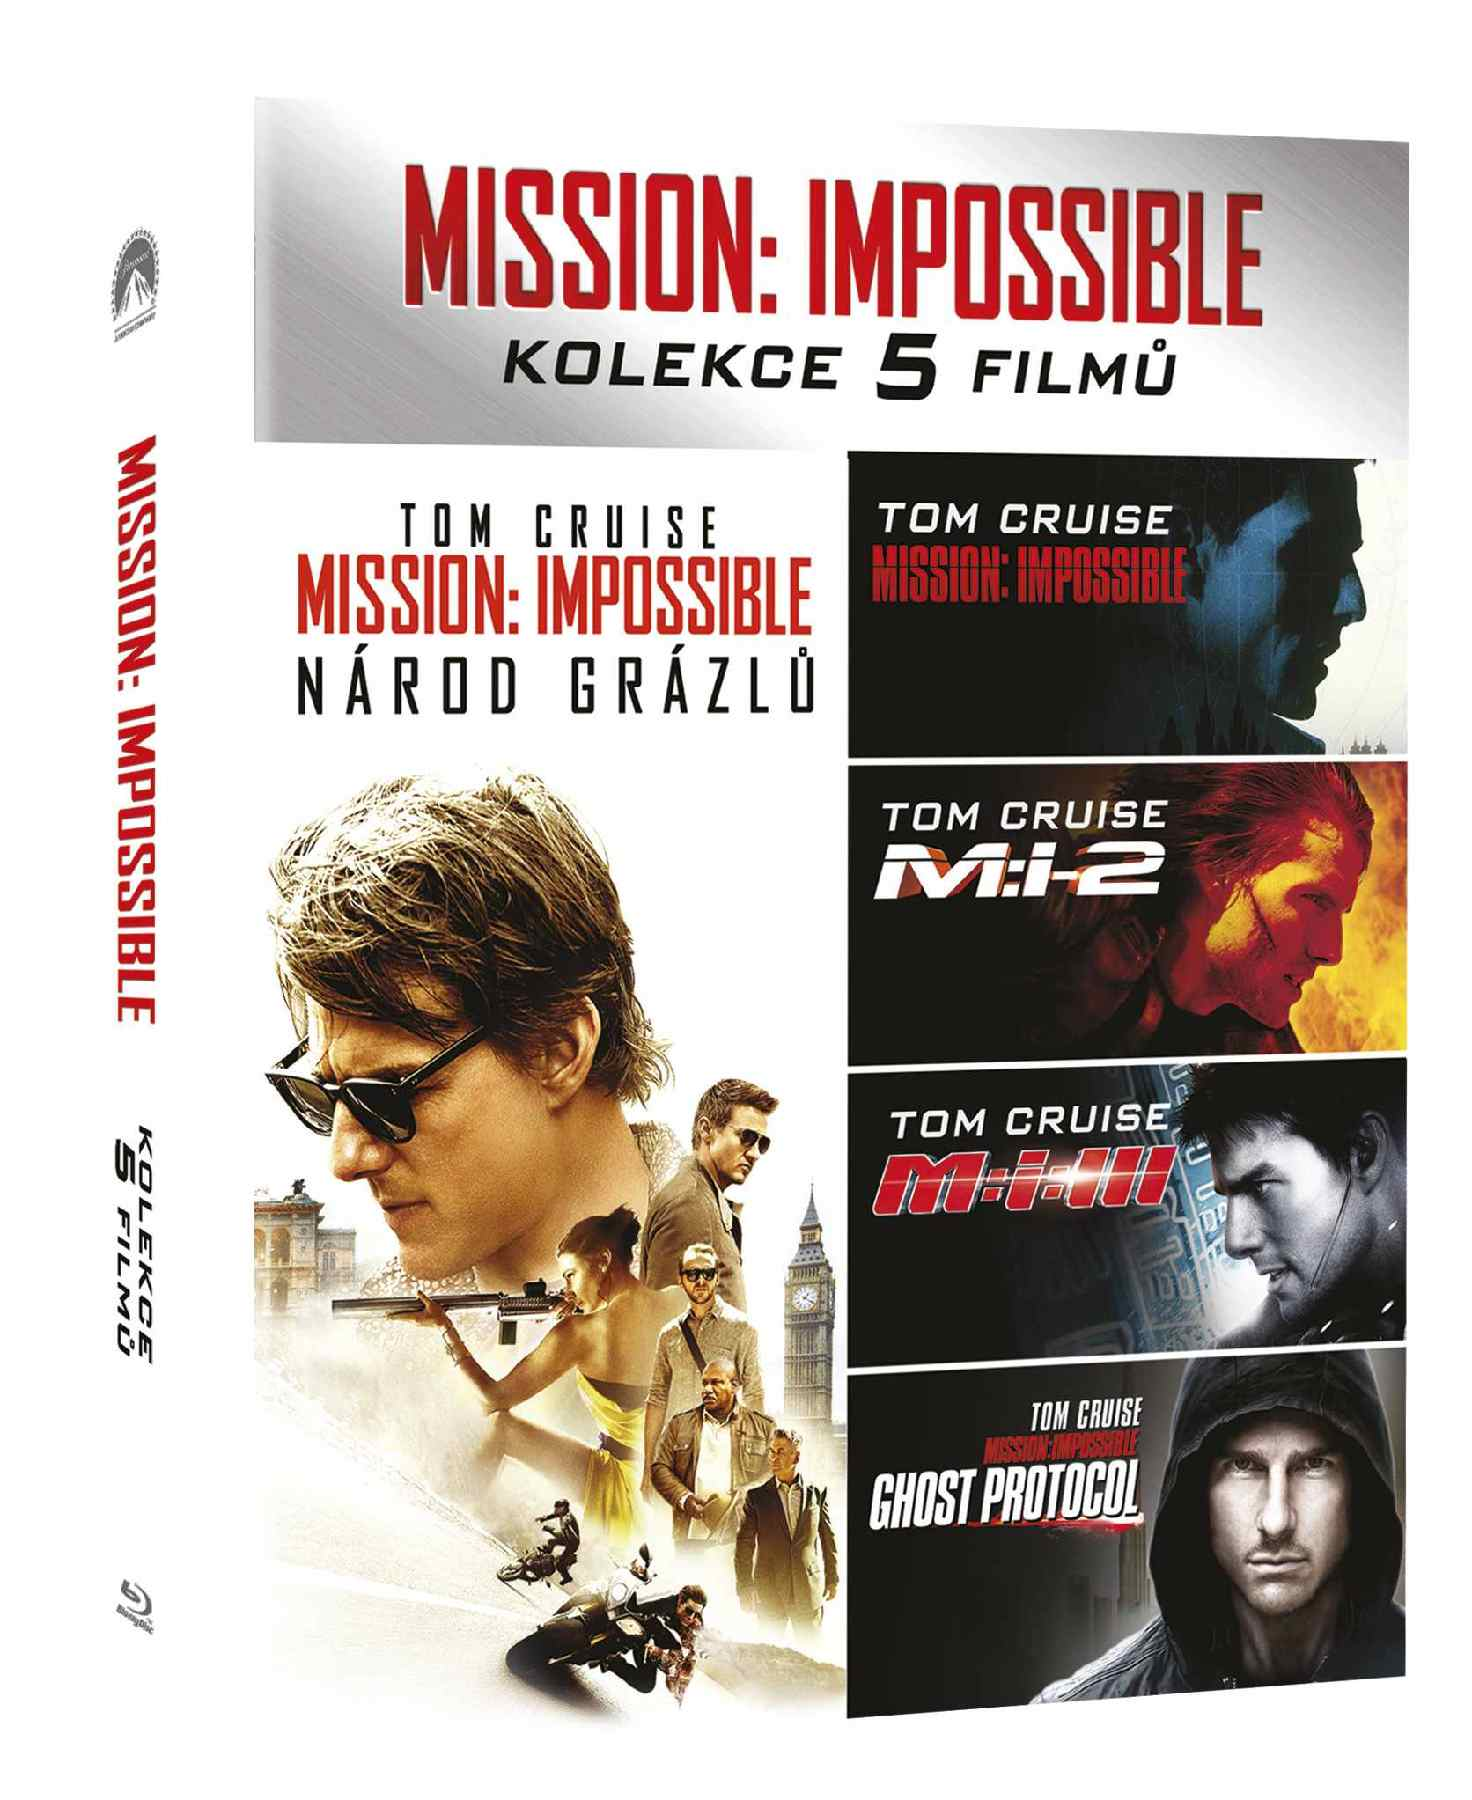 MISSION: IMPOSSIBLE 1-5 KOLEKCE (5 BD) - Blu-ray